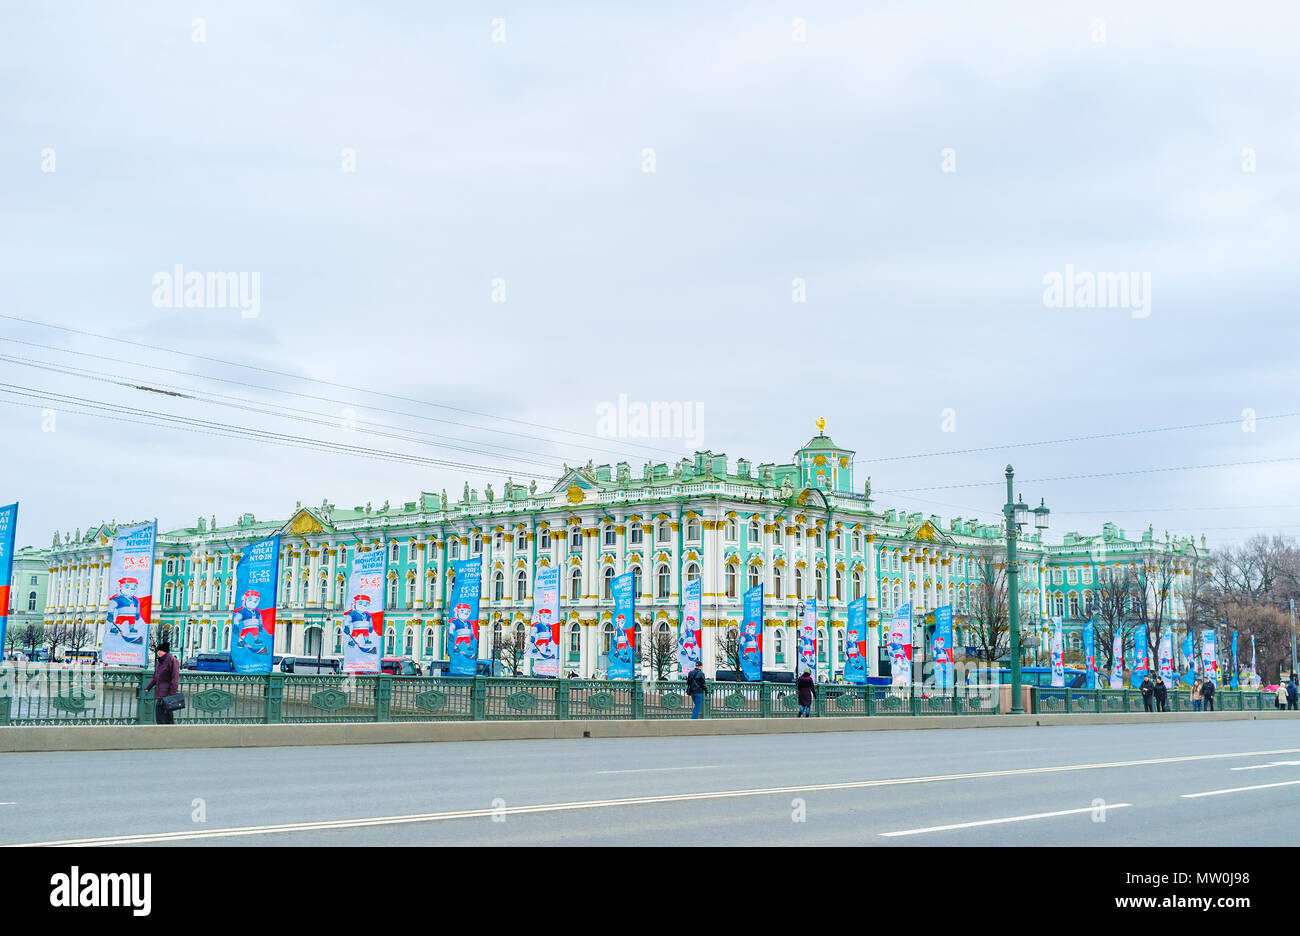 SAINT PETERSBURG, RUSSIA - APRIL 26, 2015: The view on Winter Palace through the Palace Bridge with flags dedicated to hockey competition, on April 26 Stock Photo